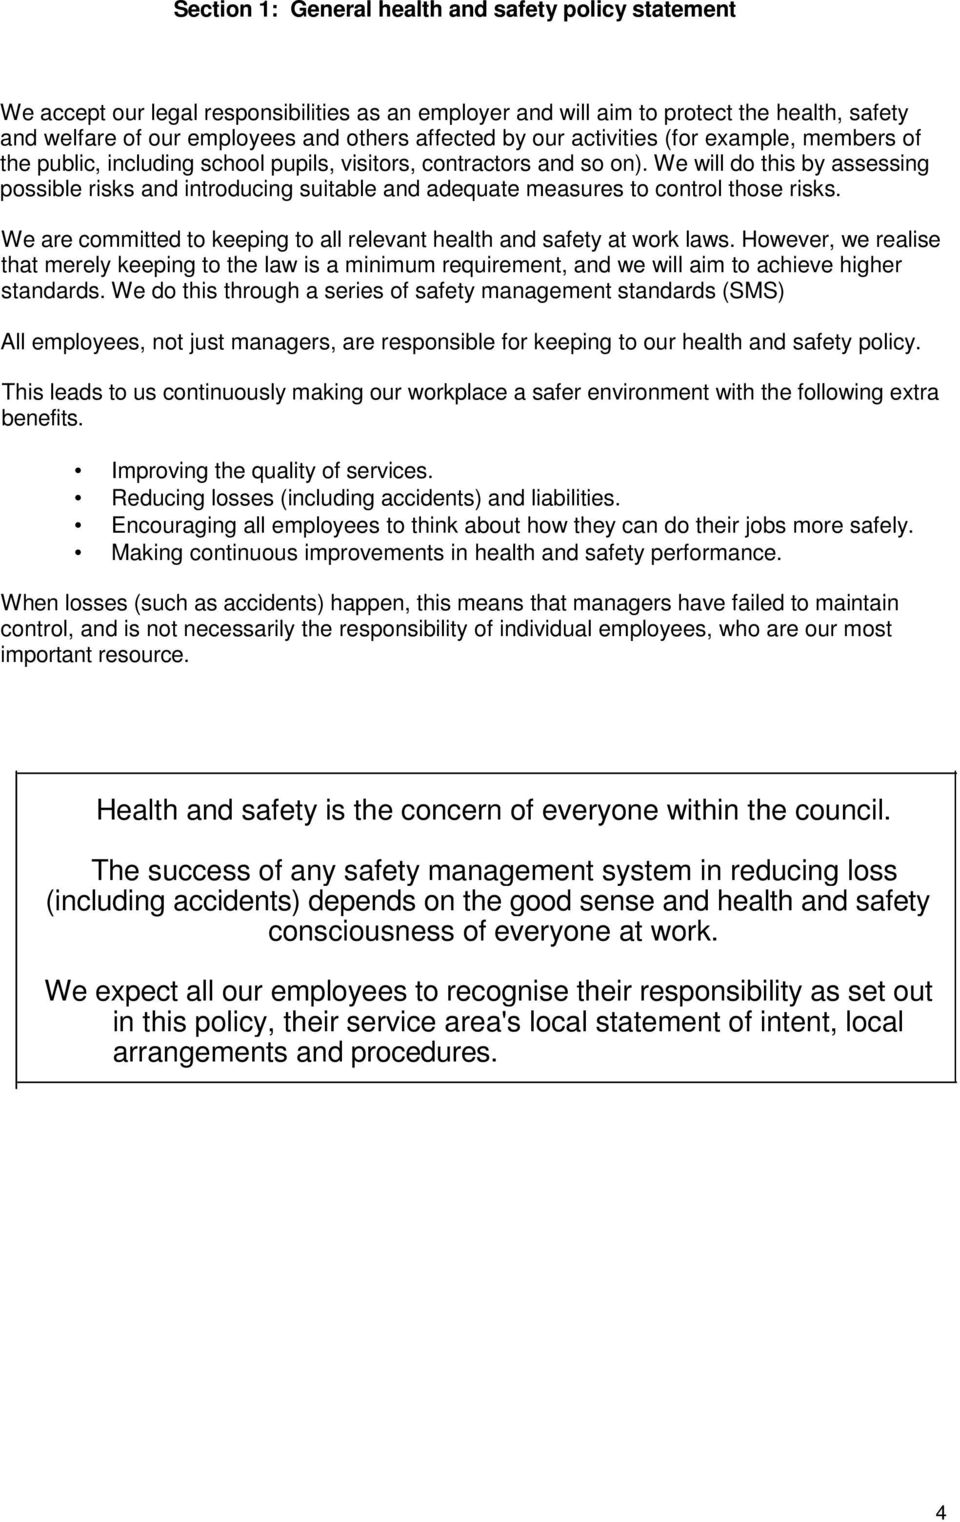 We will do this by assessing possible risks and introducing suitable and adequate measures to control those risks. We are committed to keeping to all relevant health and safety at work laws.